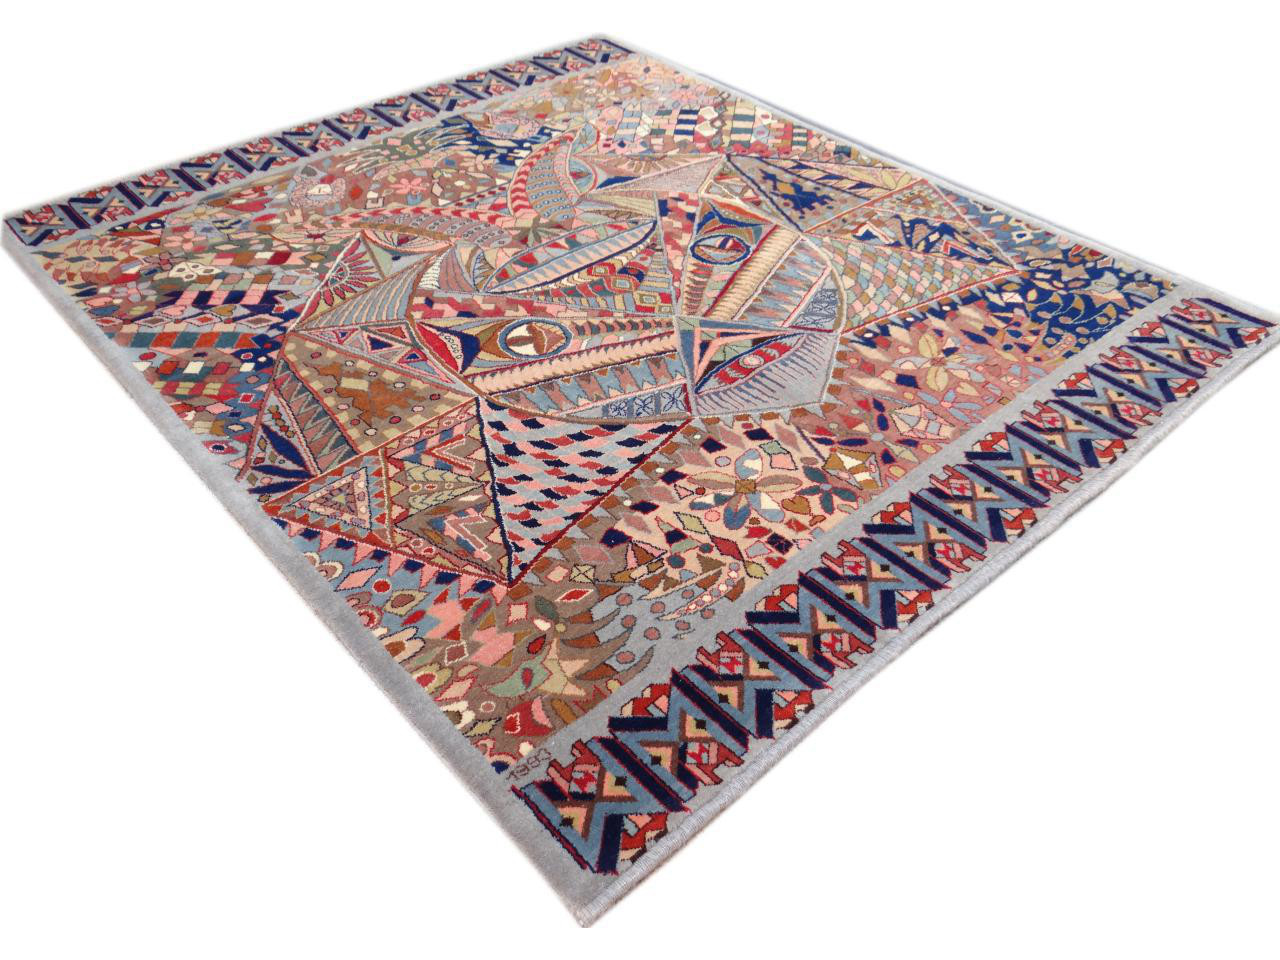 39 the mask 39 of belgian creation tapis luxury n 2181 177x150cm - Tapis contemporain belgique ...